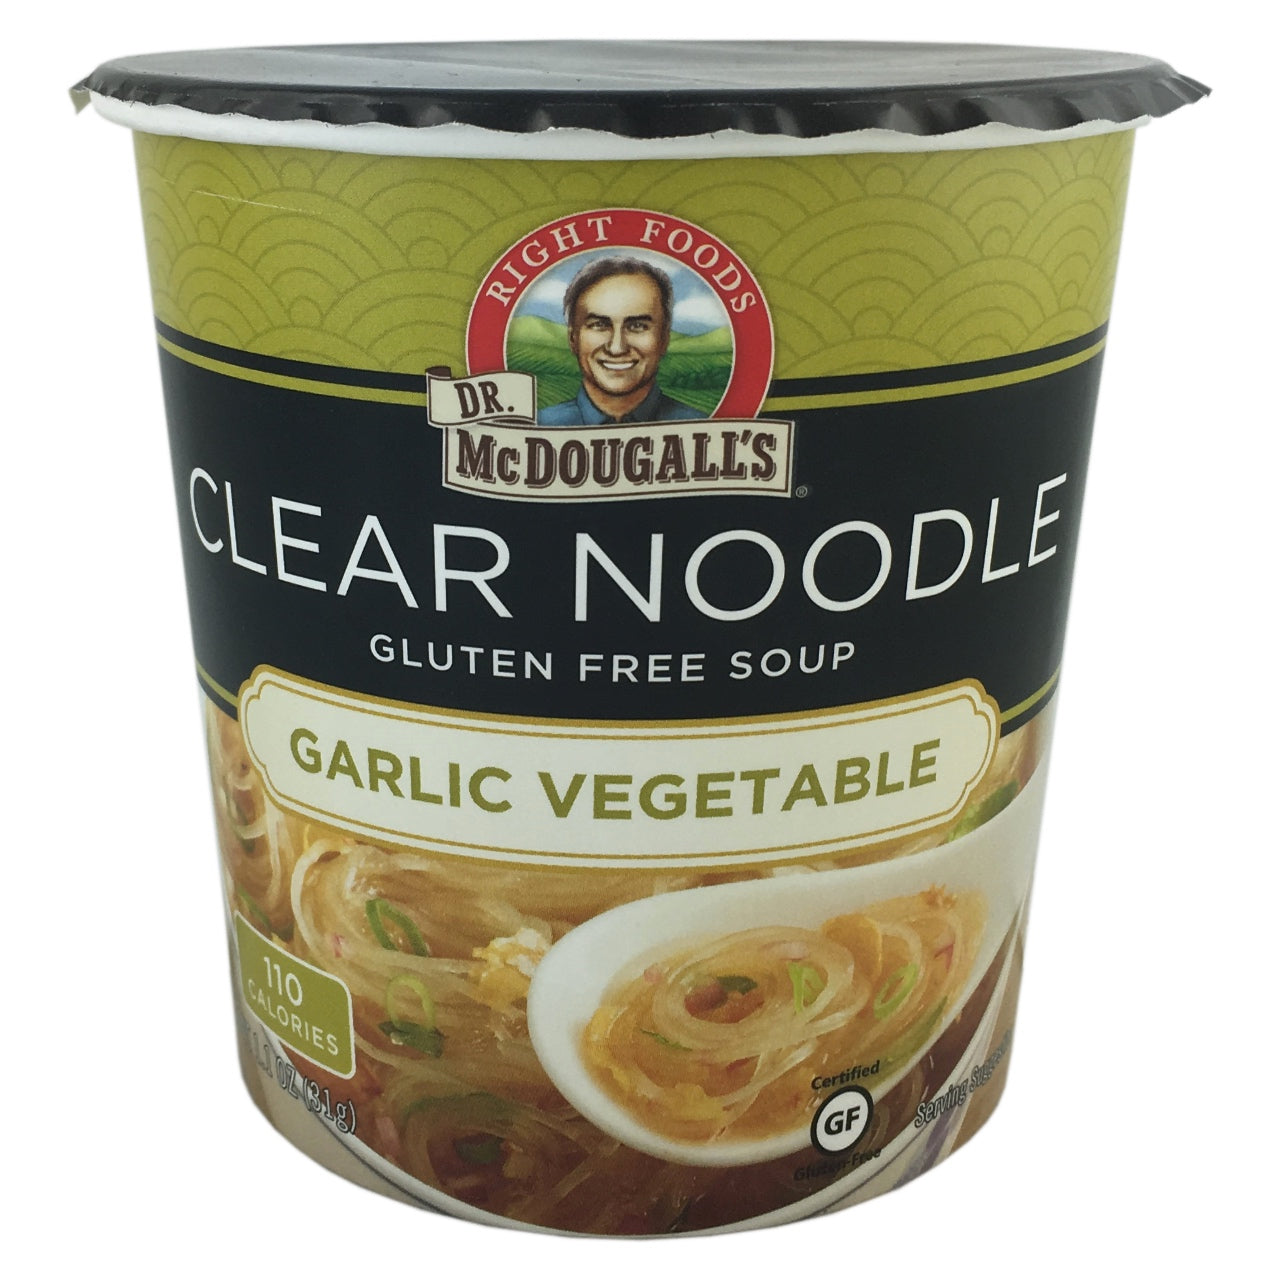 Dr McDougall Garlic Vegetable Clear Noodle Soup